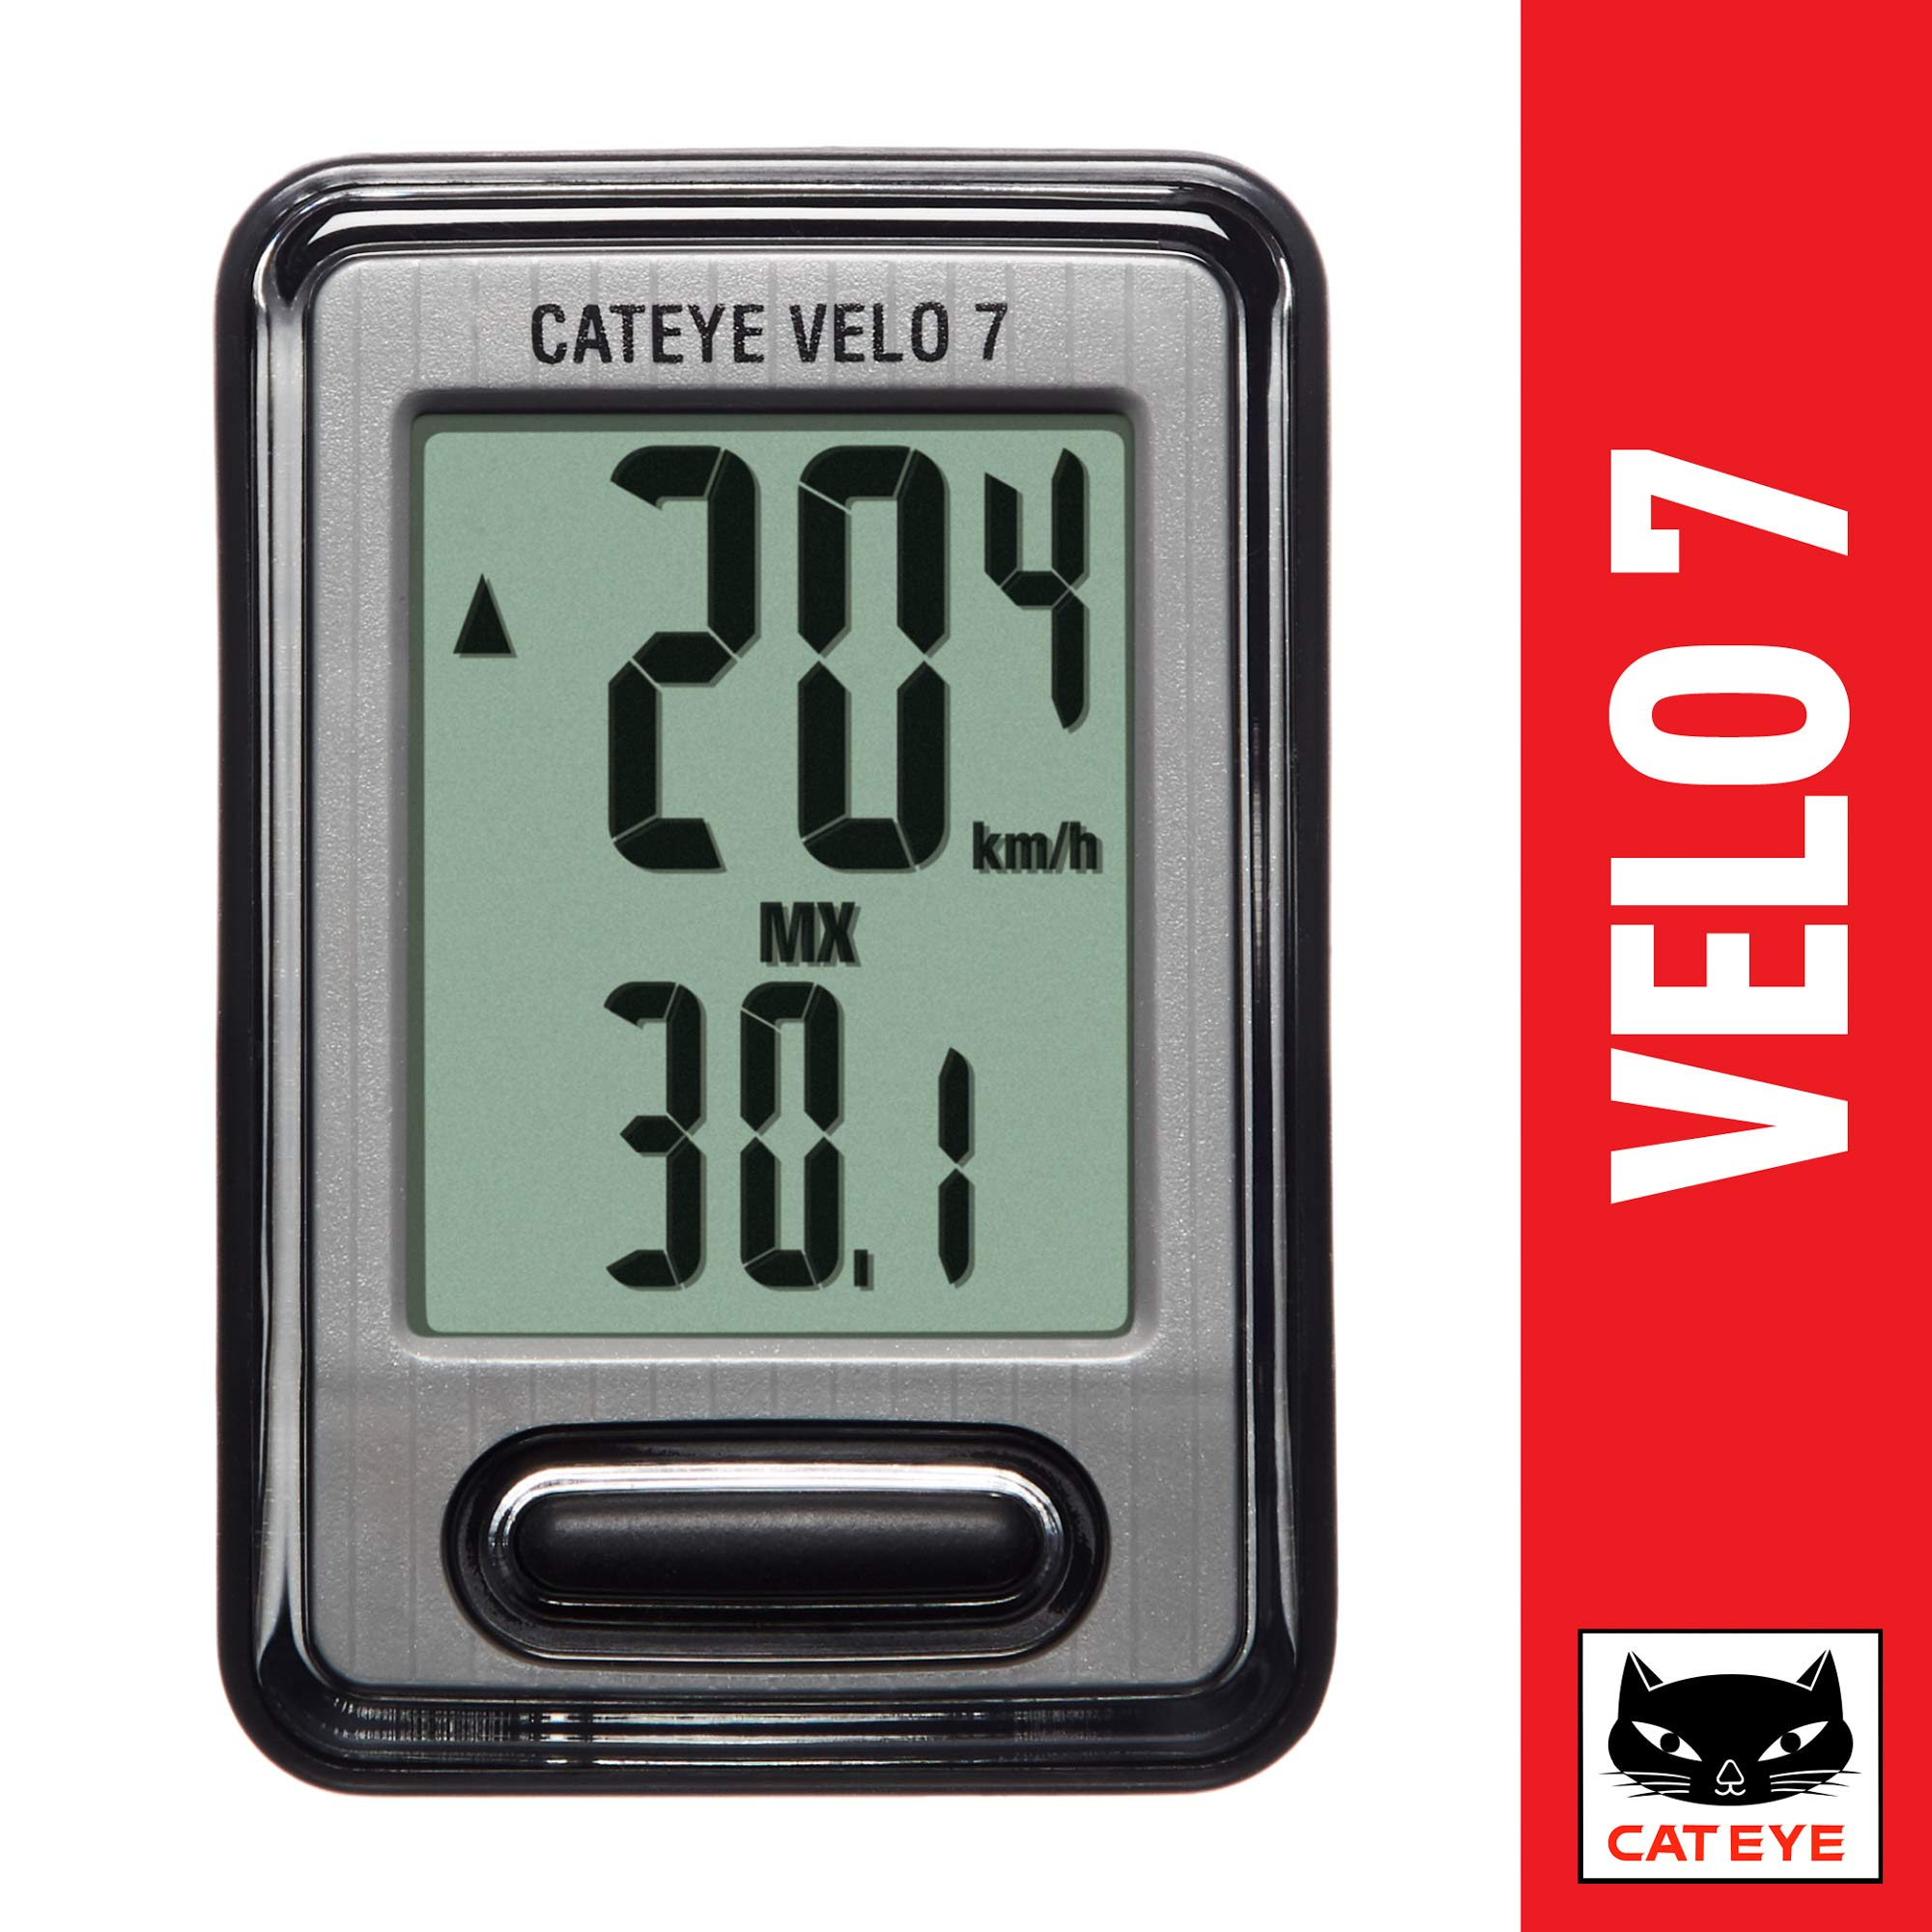 CAT EYE - Velo 7 Wired Bike Computer with Odometer and Speedometer by CAT EYE